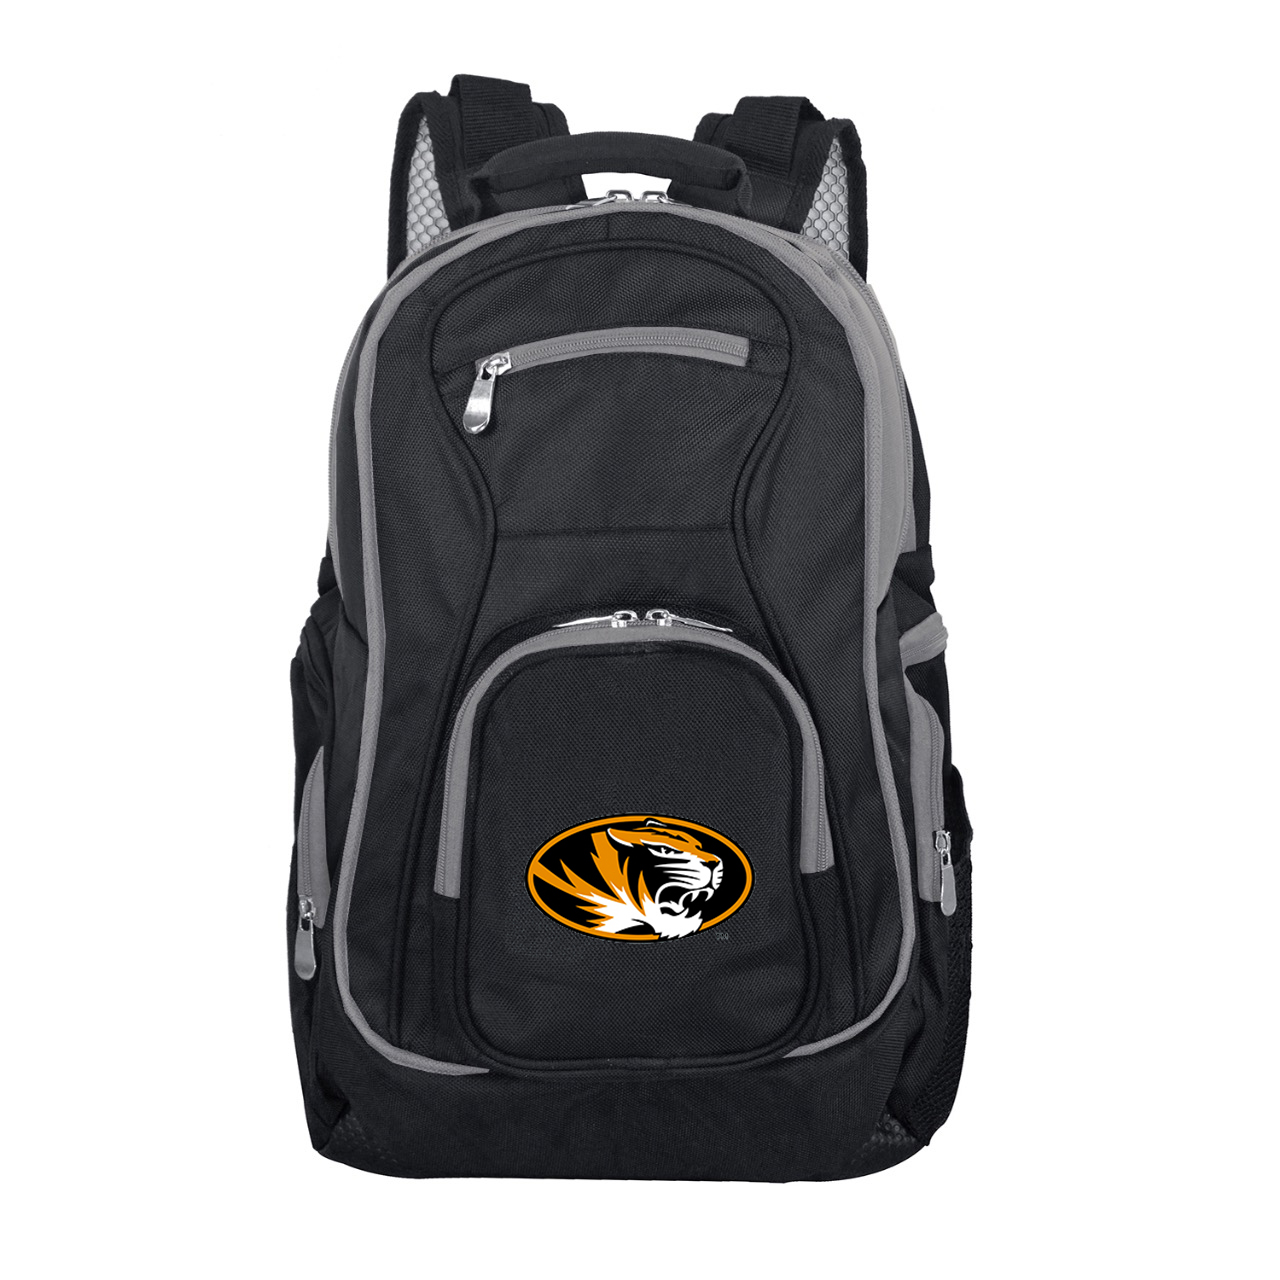 NCAA Missouri Tigers Premium Laptop Backpack with Colored Trim